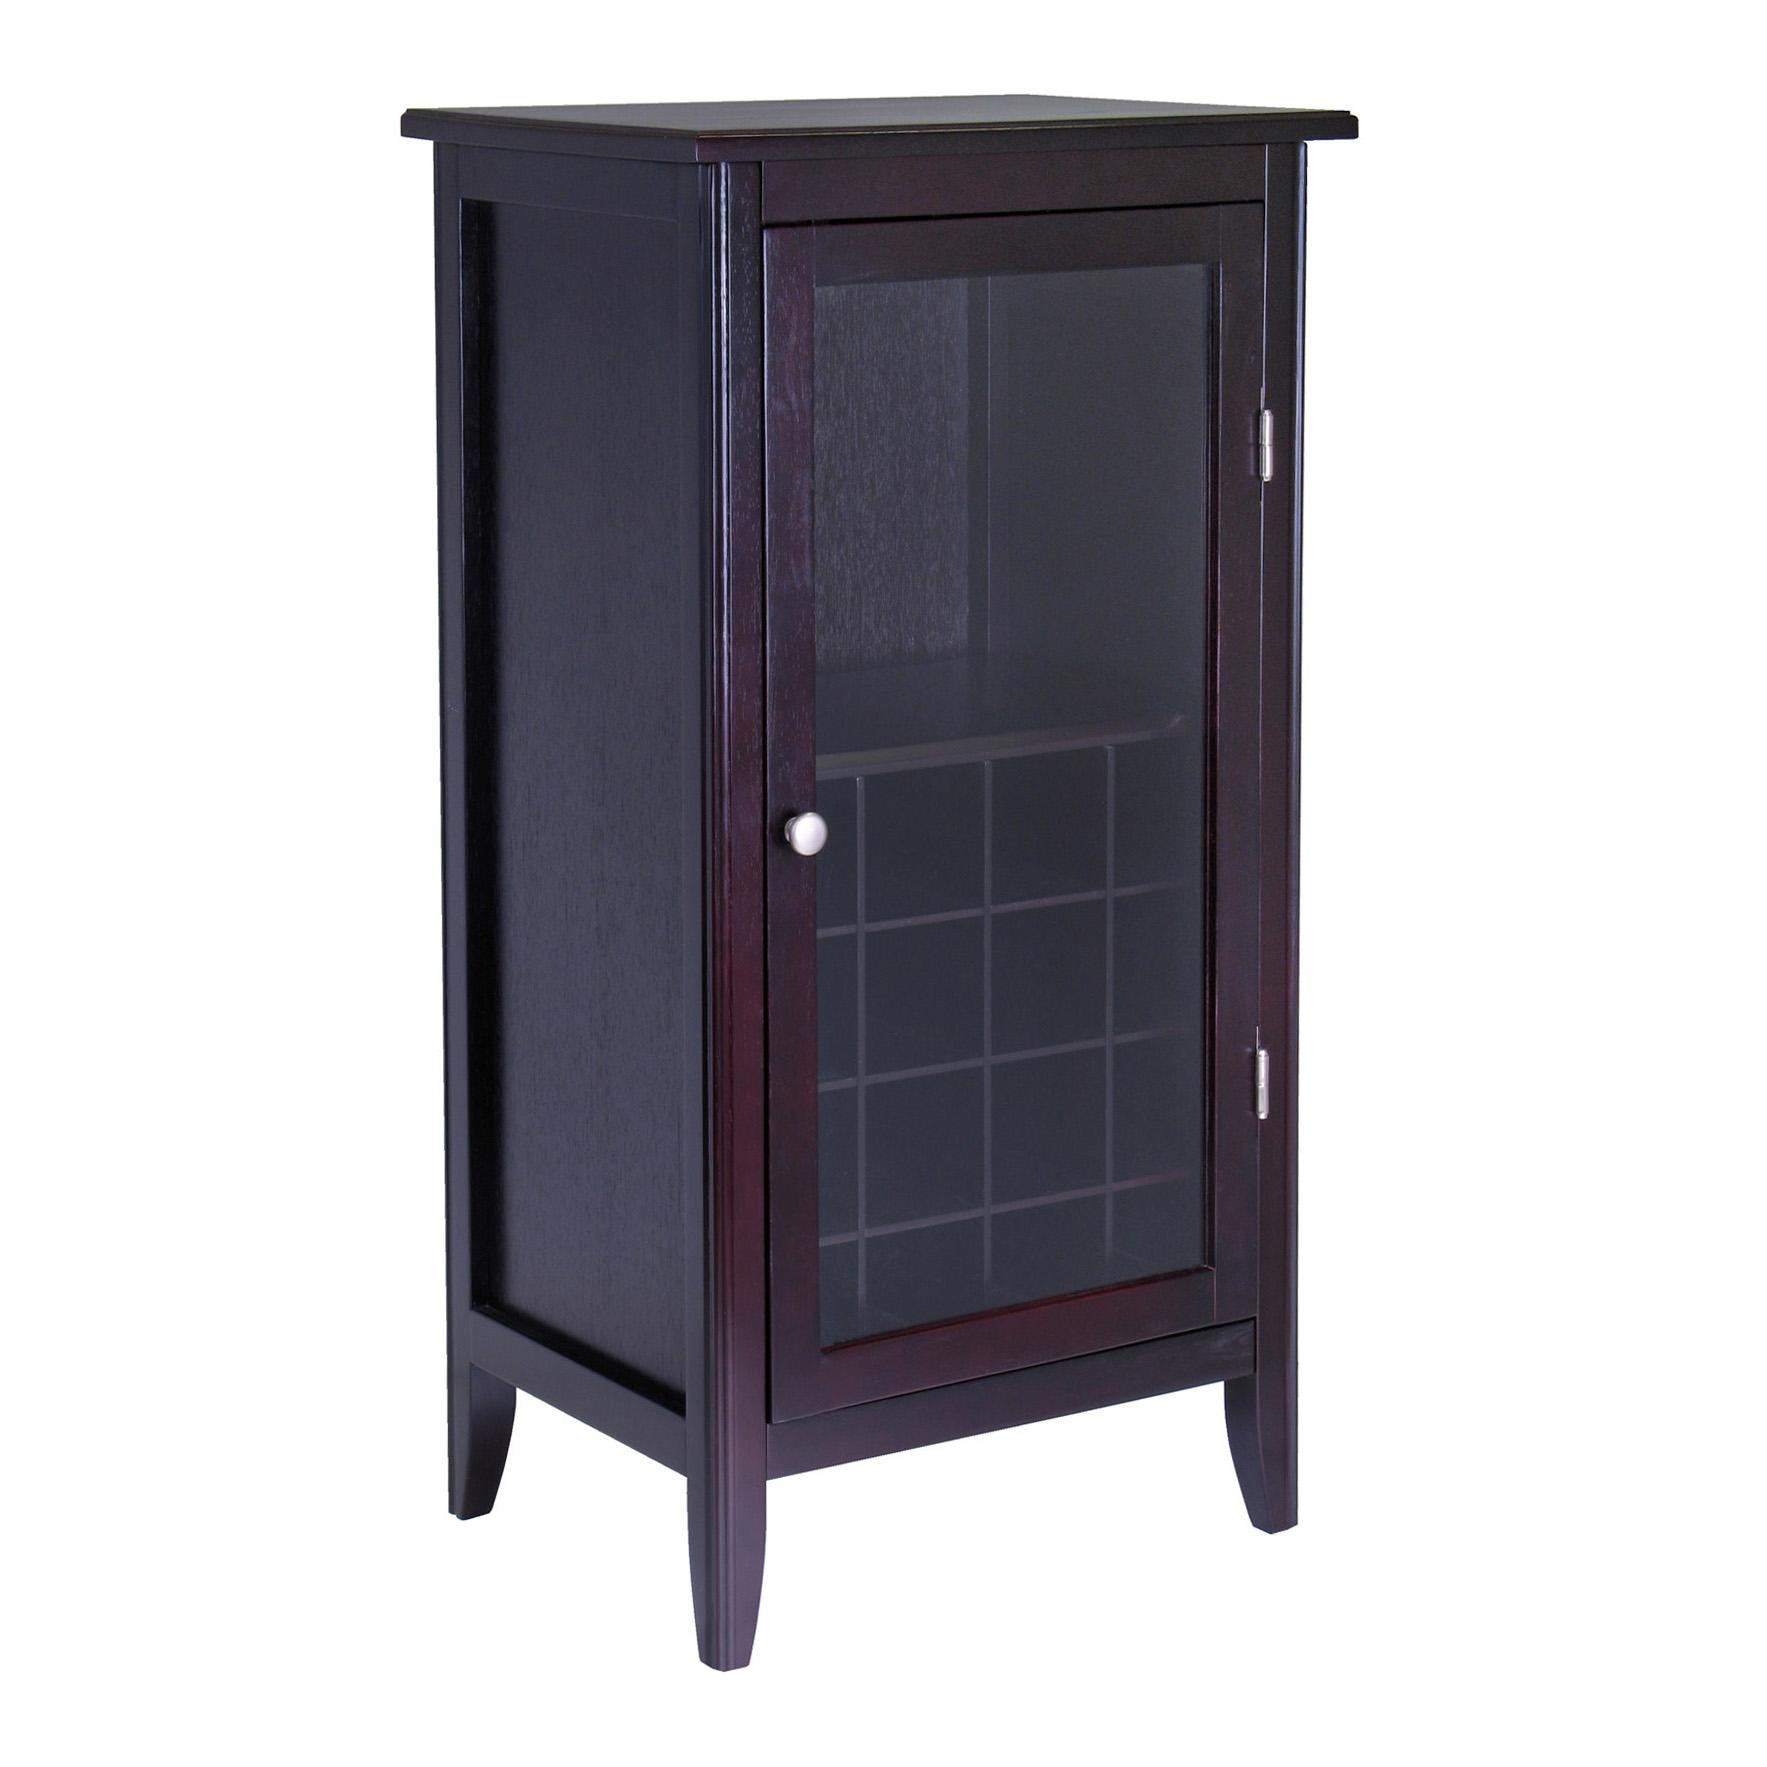 Winsome wood wine cabinet with glass door for 1 door storage cabinet